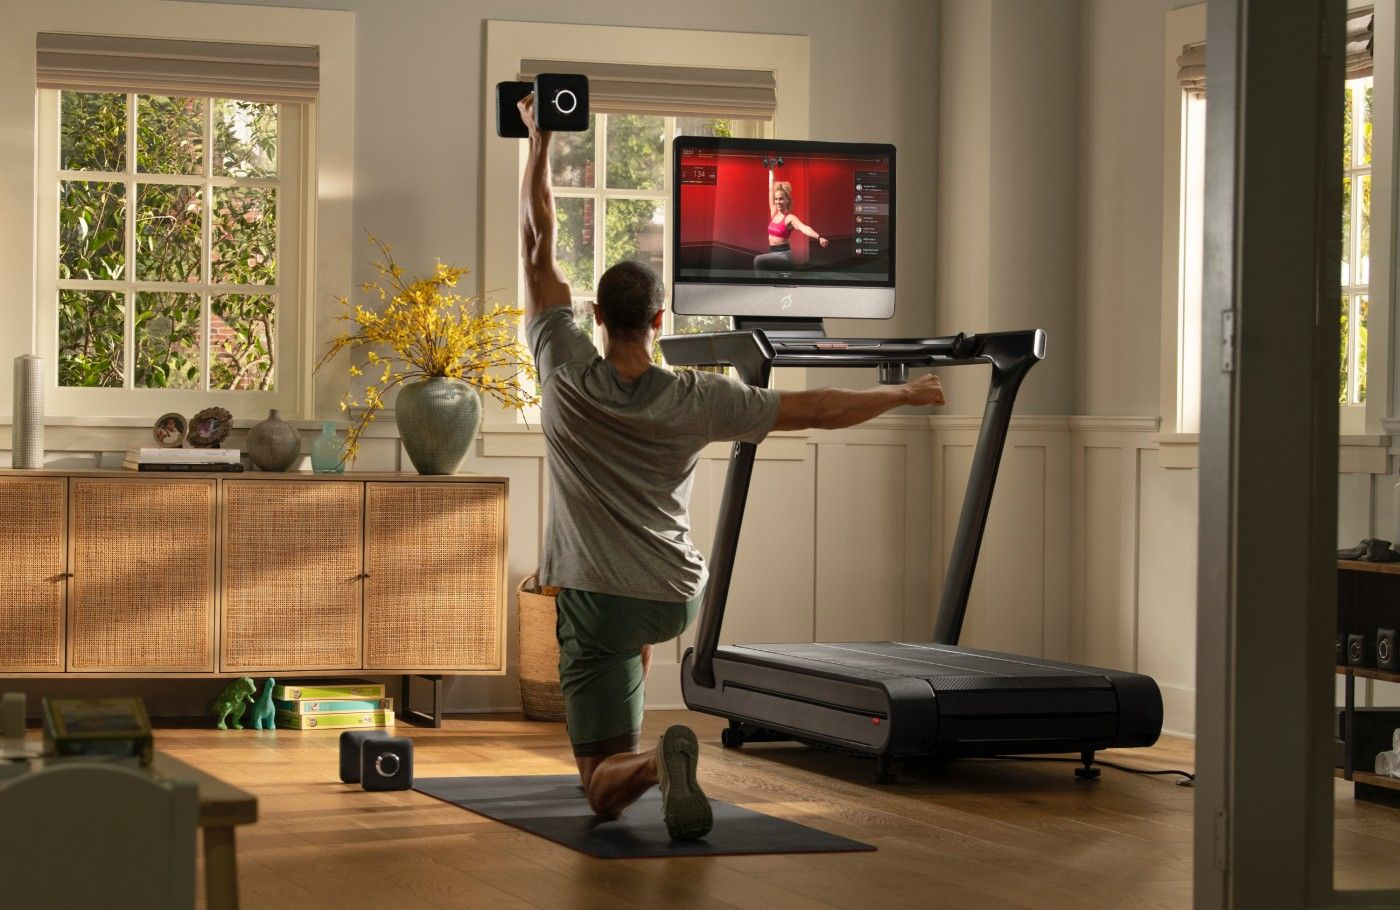 Home Workout Devices To Level Up Your Gym: Cardio, Resistance Training & Recovery